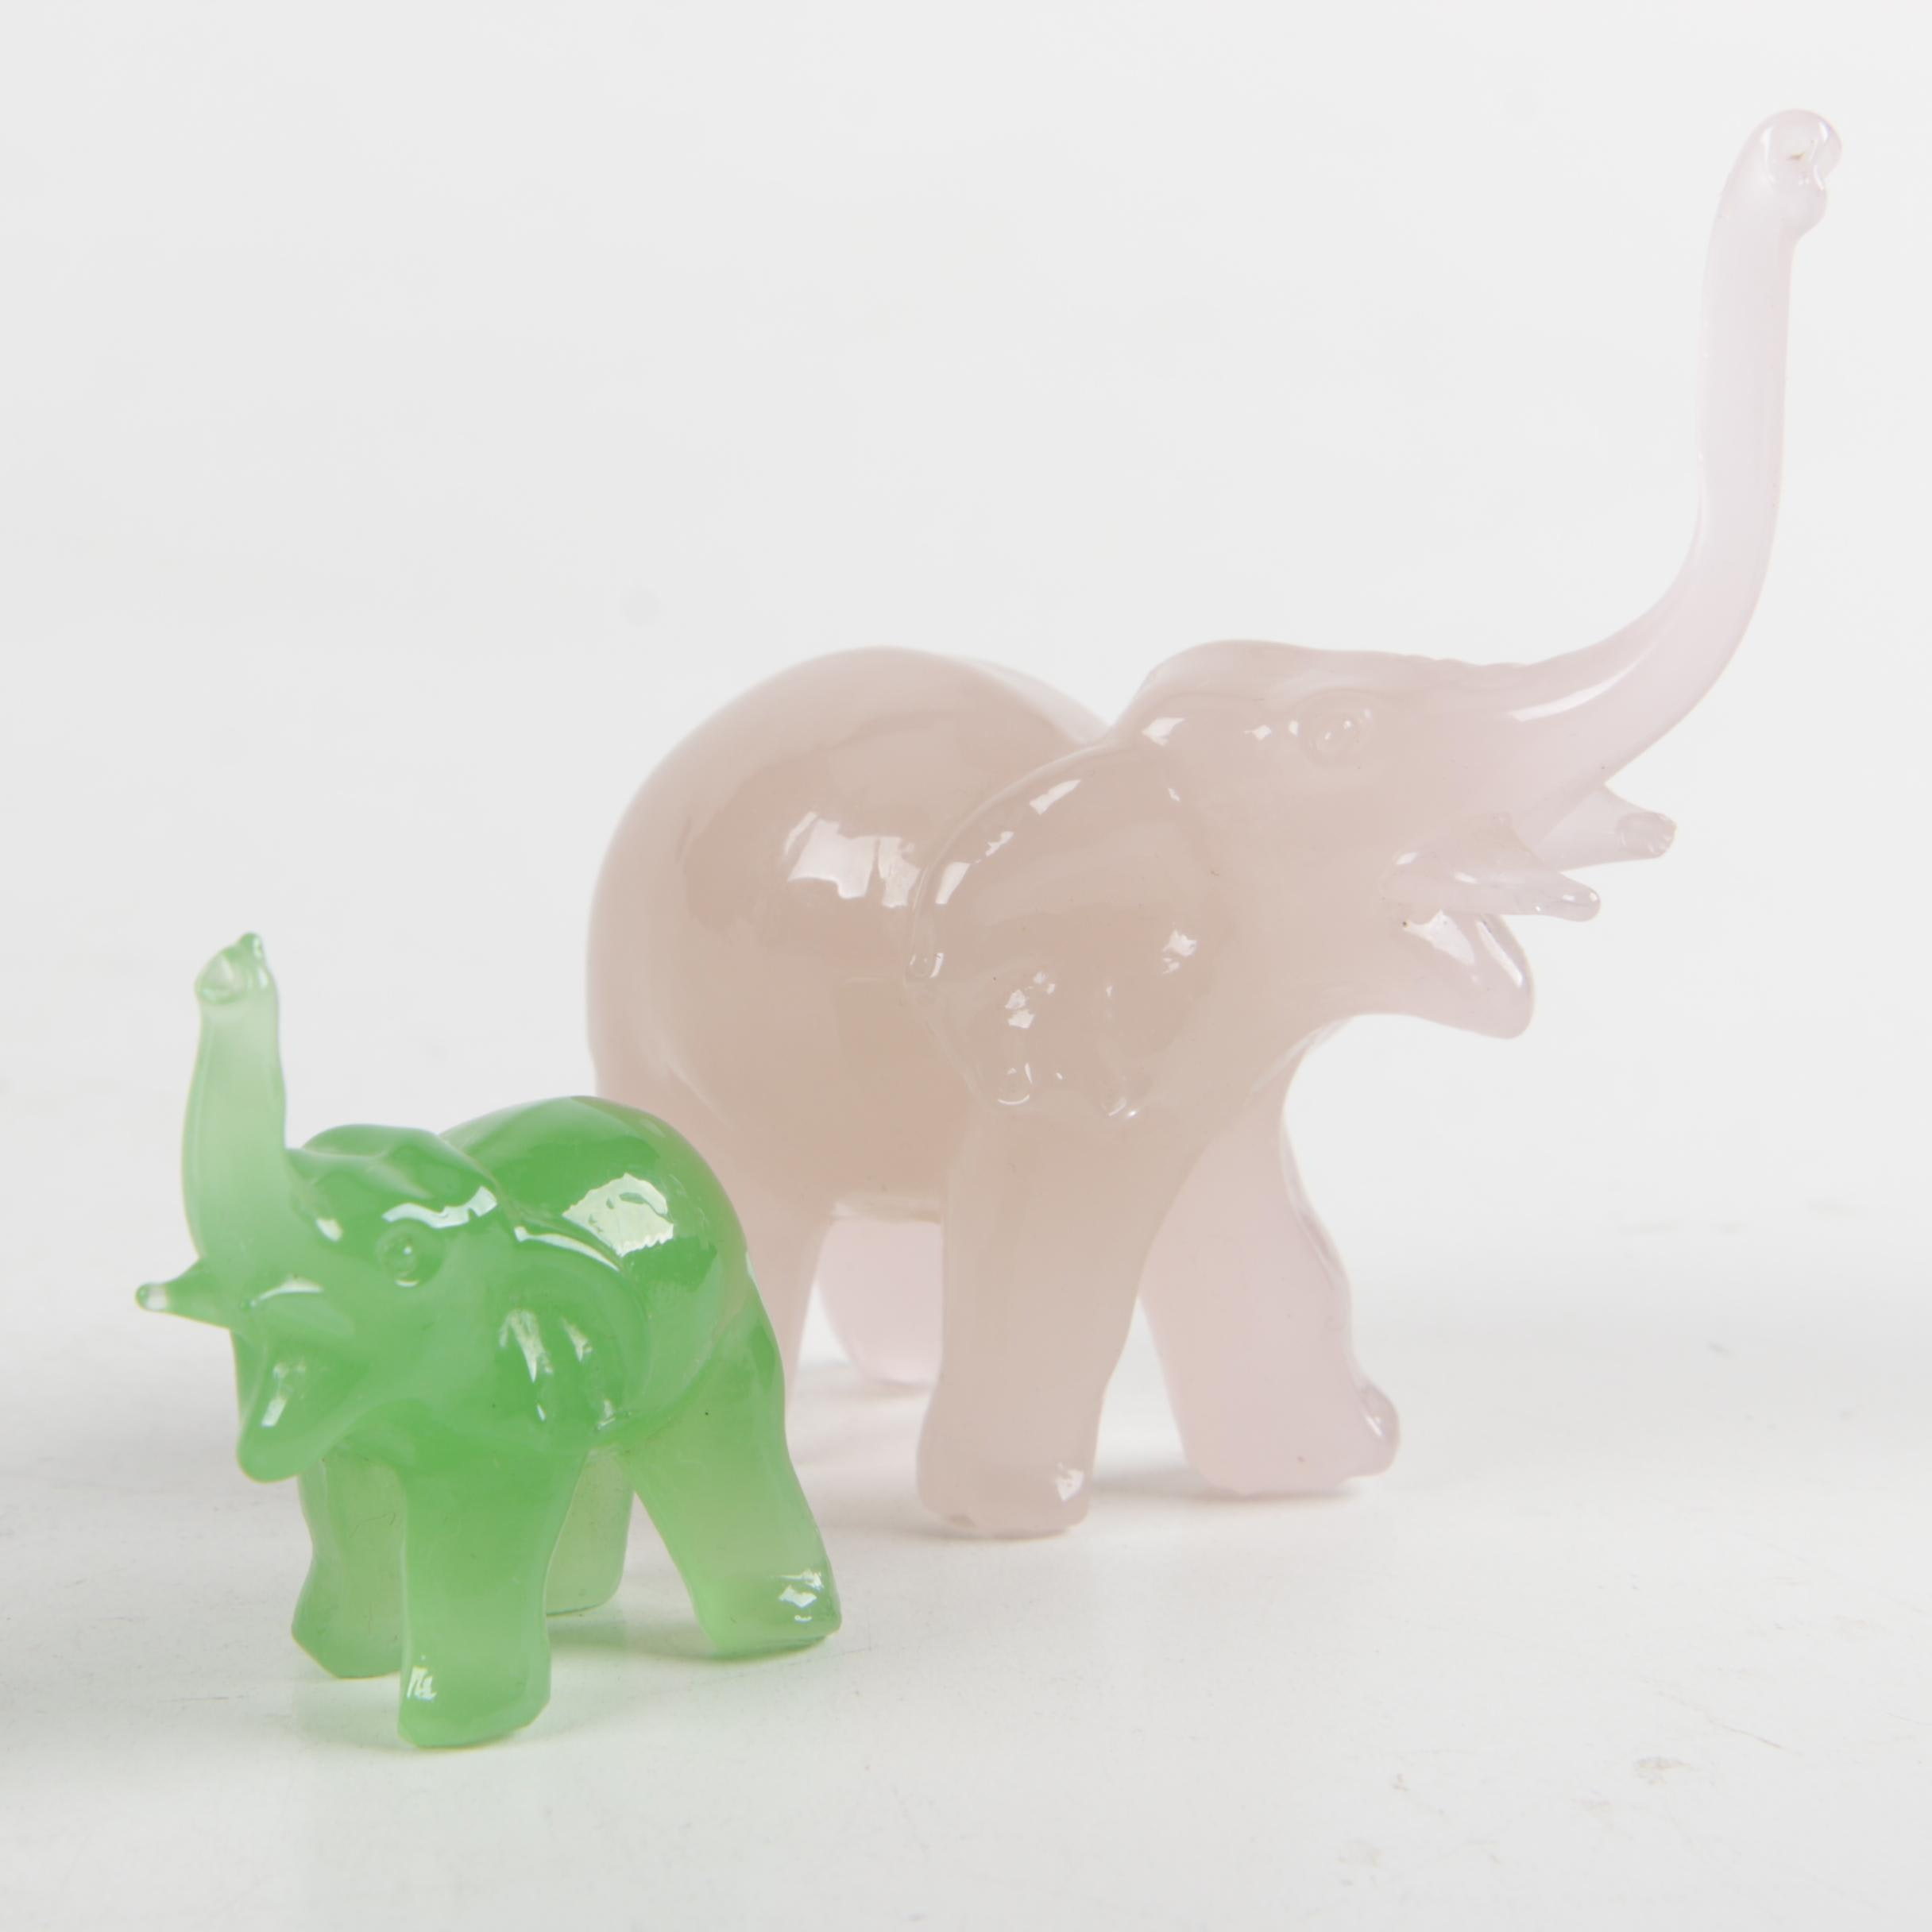 Pair of Glass Elephant Figurines